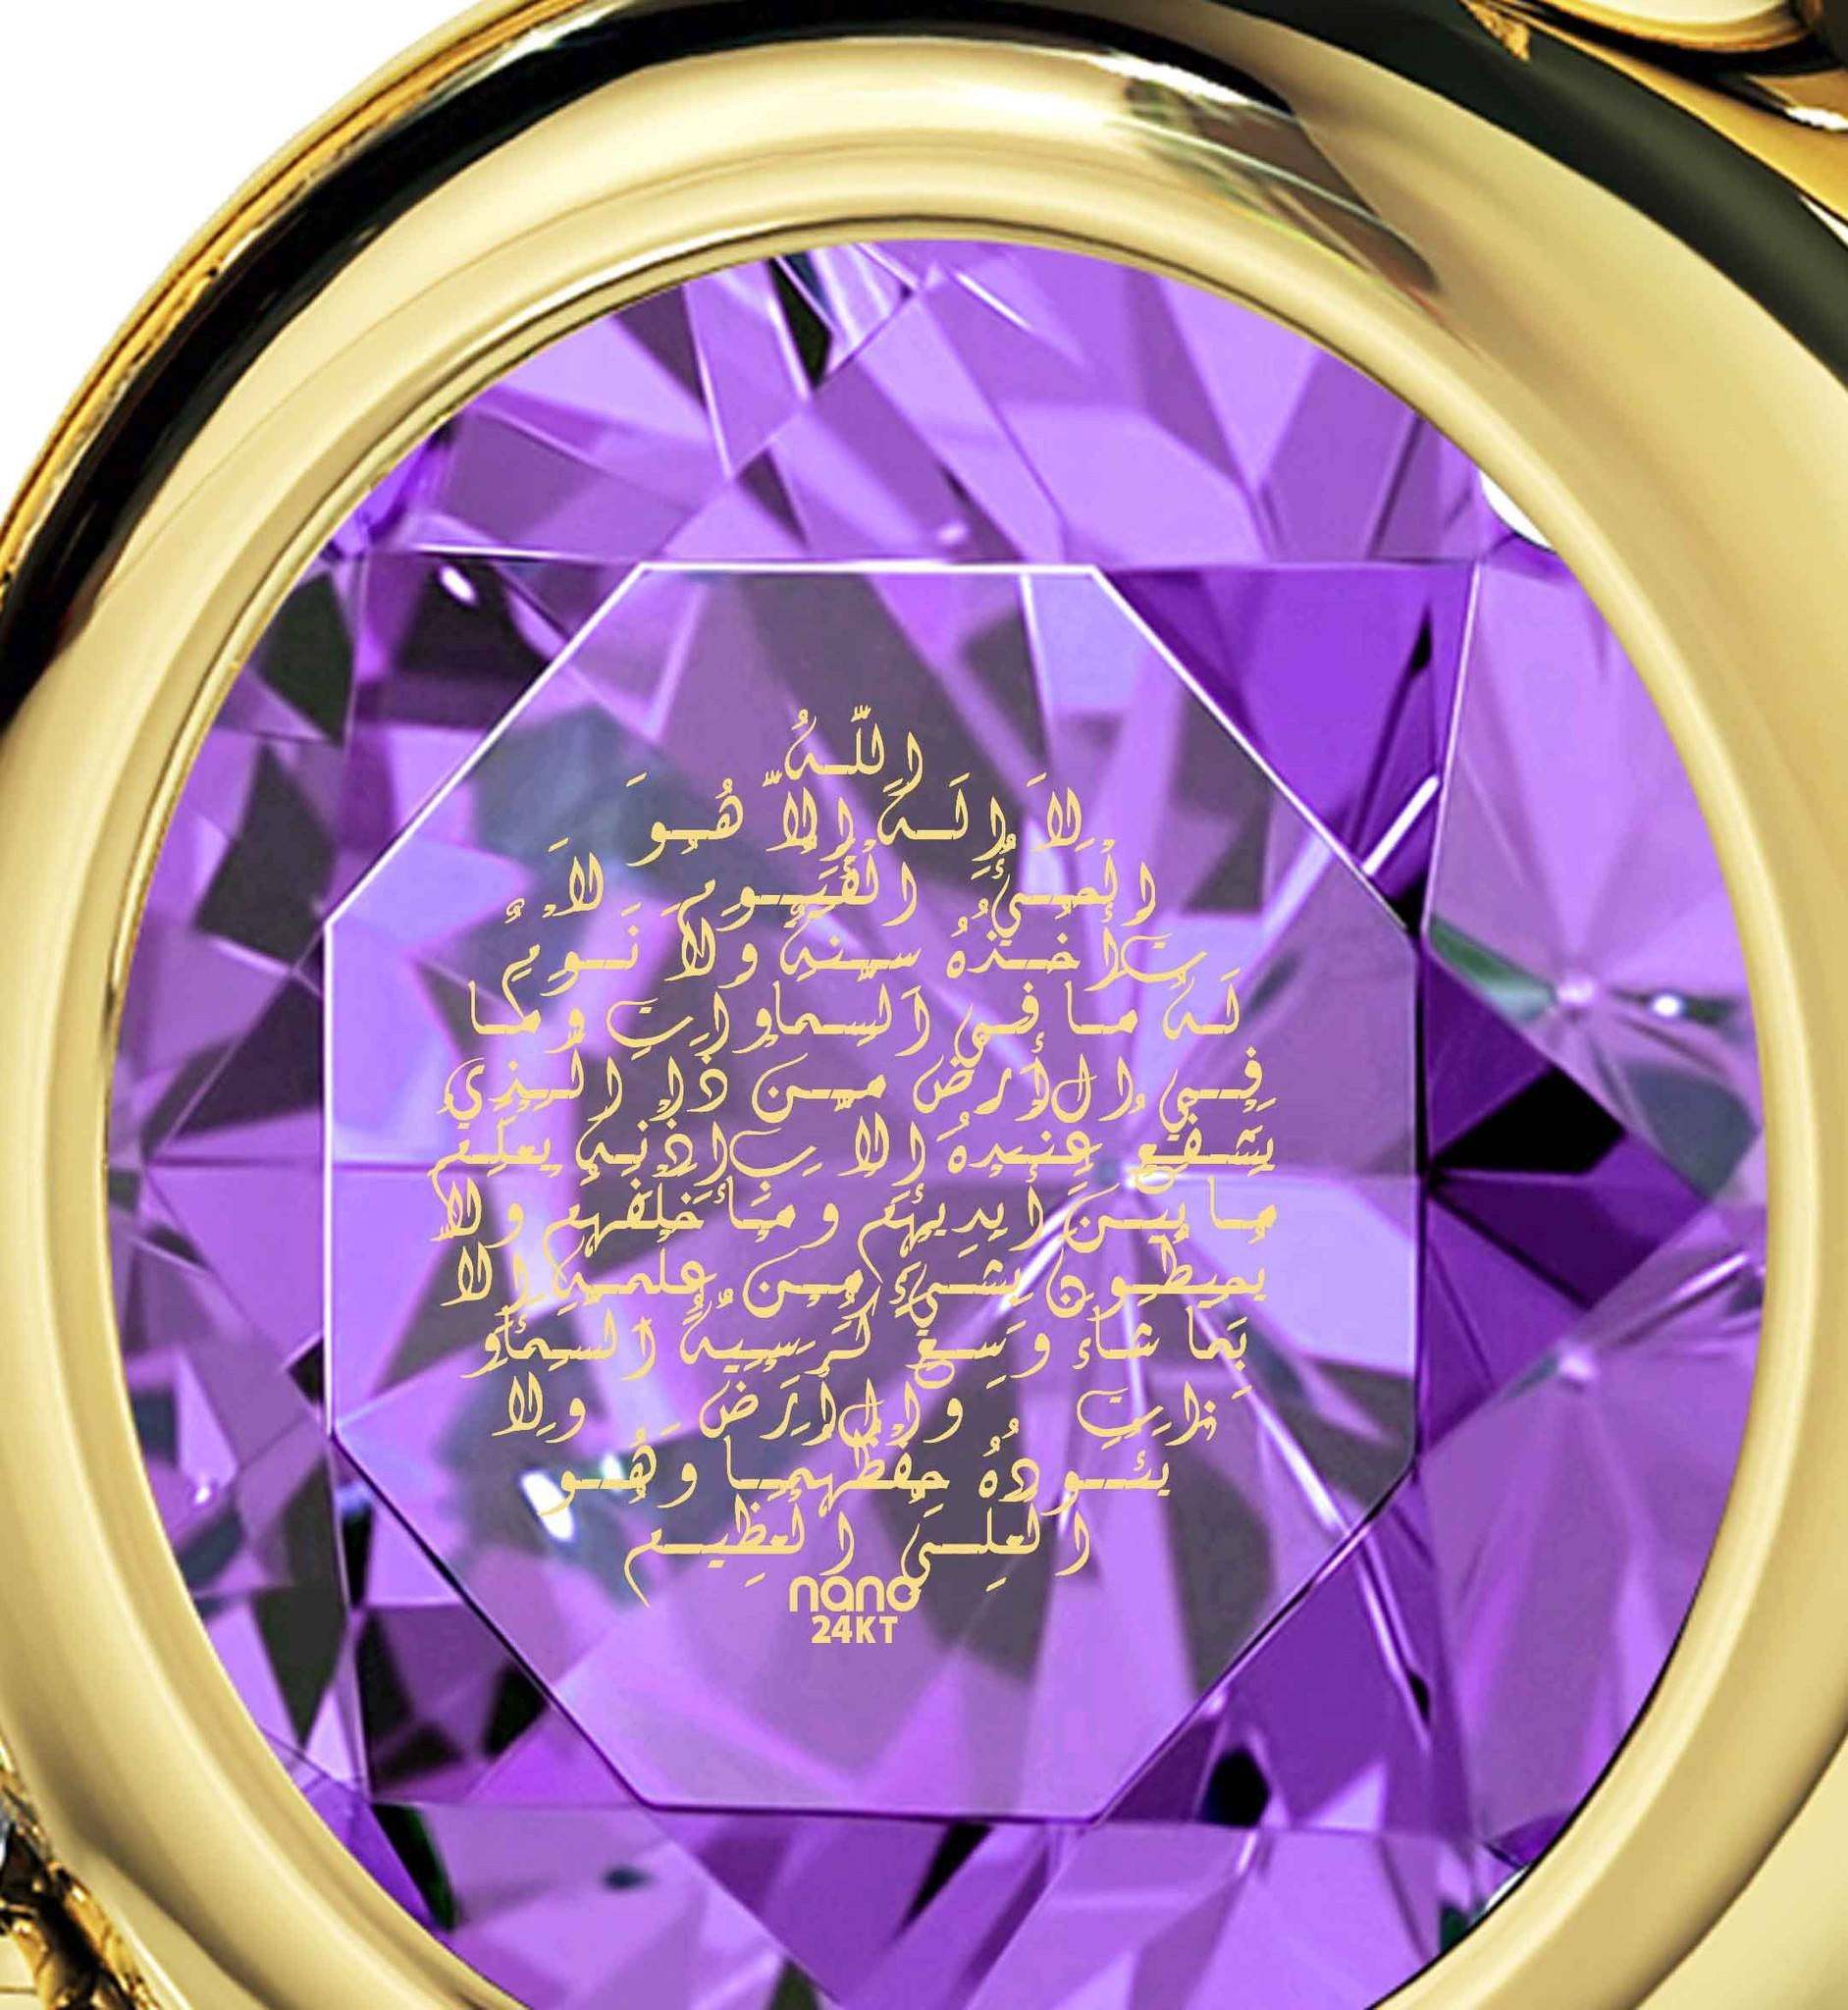 Muslim Religious Jewelry: 14k Heart Diamonds with Ayatul Kursi - Nano Jewelry